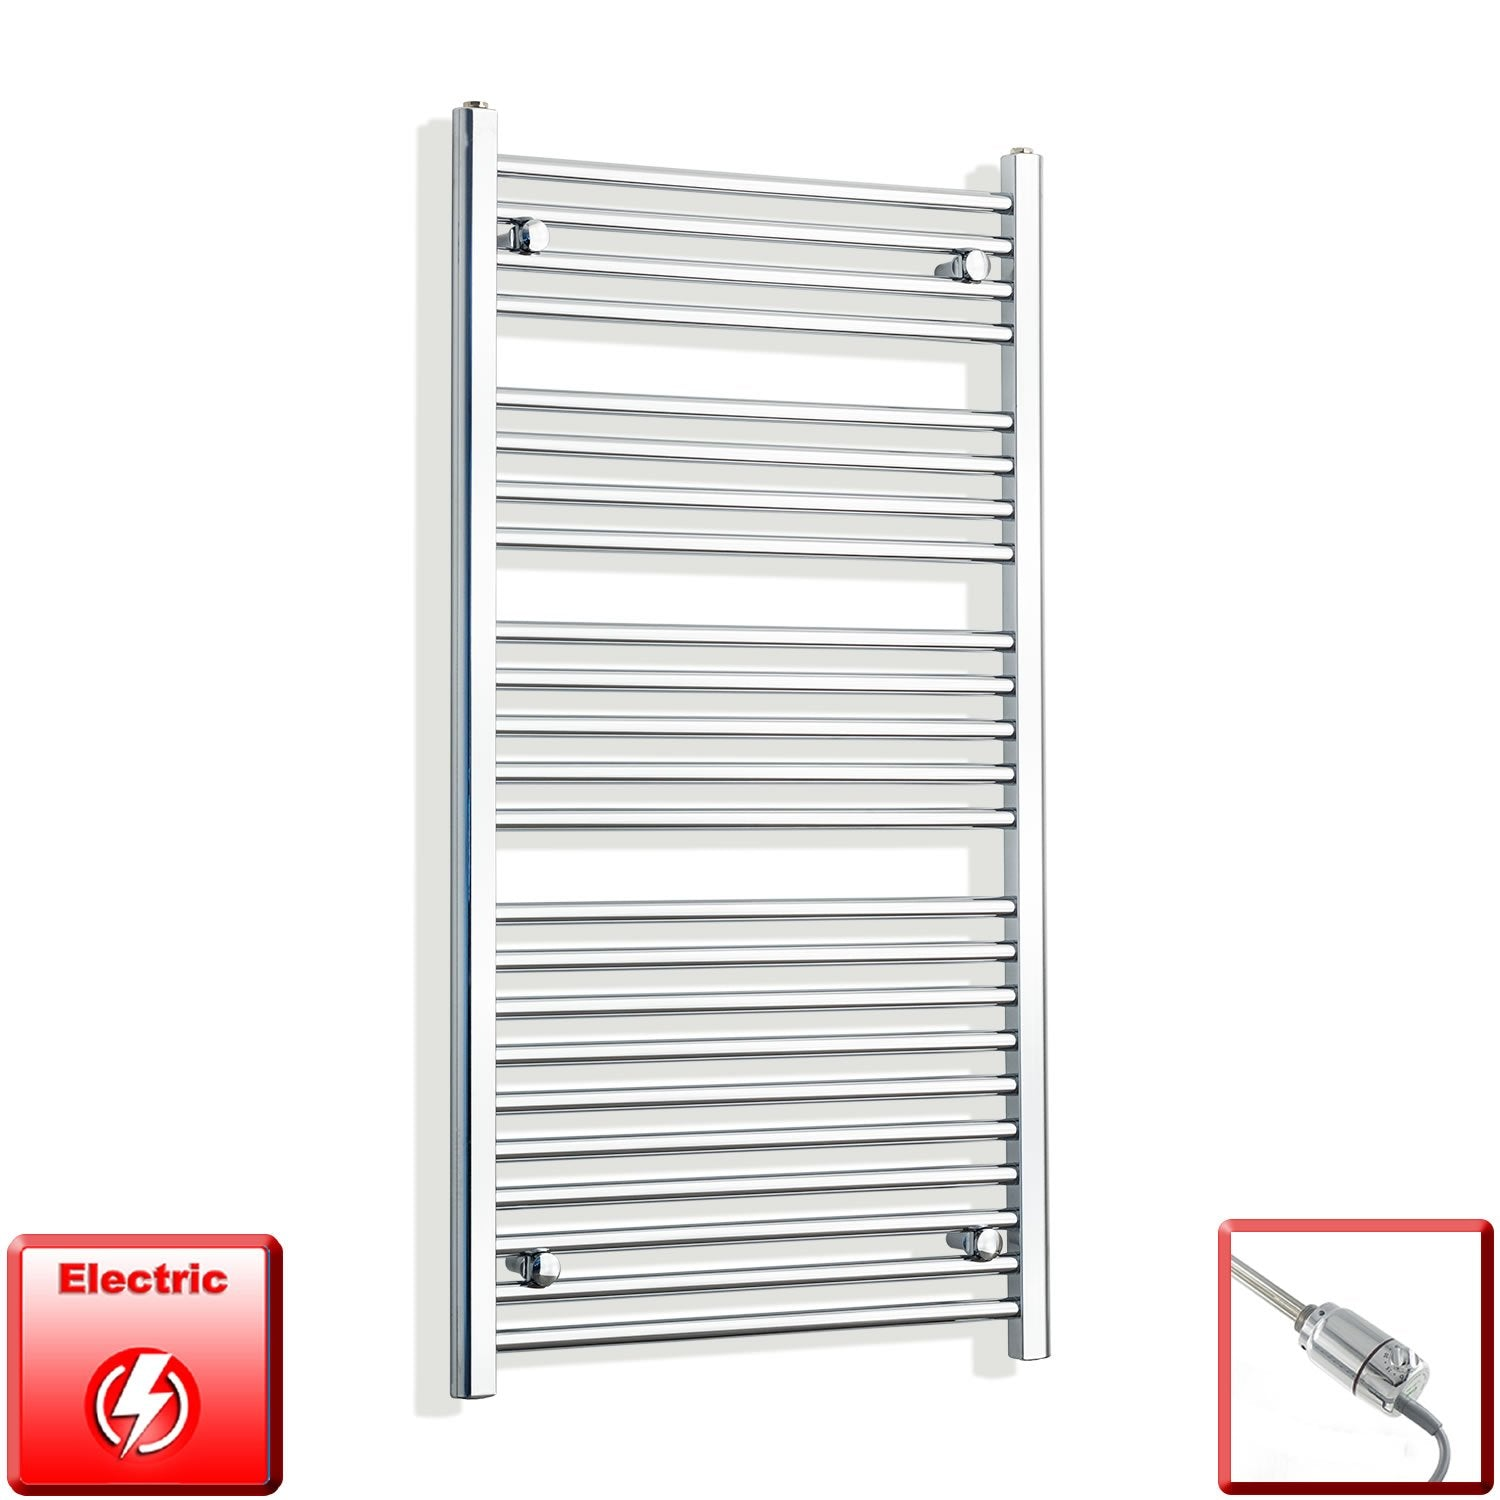 700mm Wide 1200mm High Flat Or Curved Chrome Pre-Filled Electric Heated Towel Rail Radiator HTR,GT Thermostatic / Straight